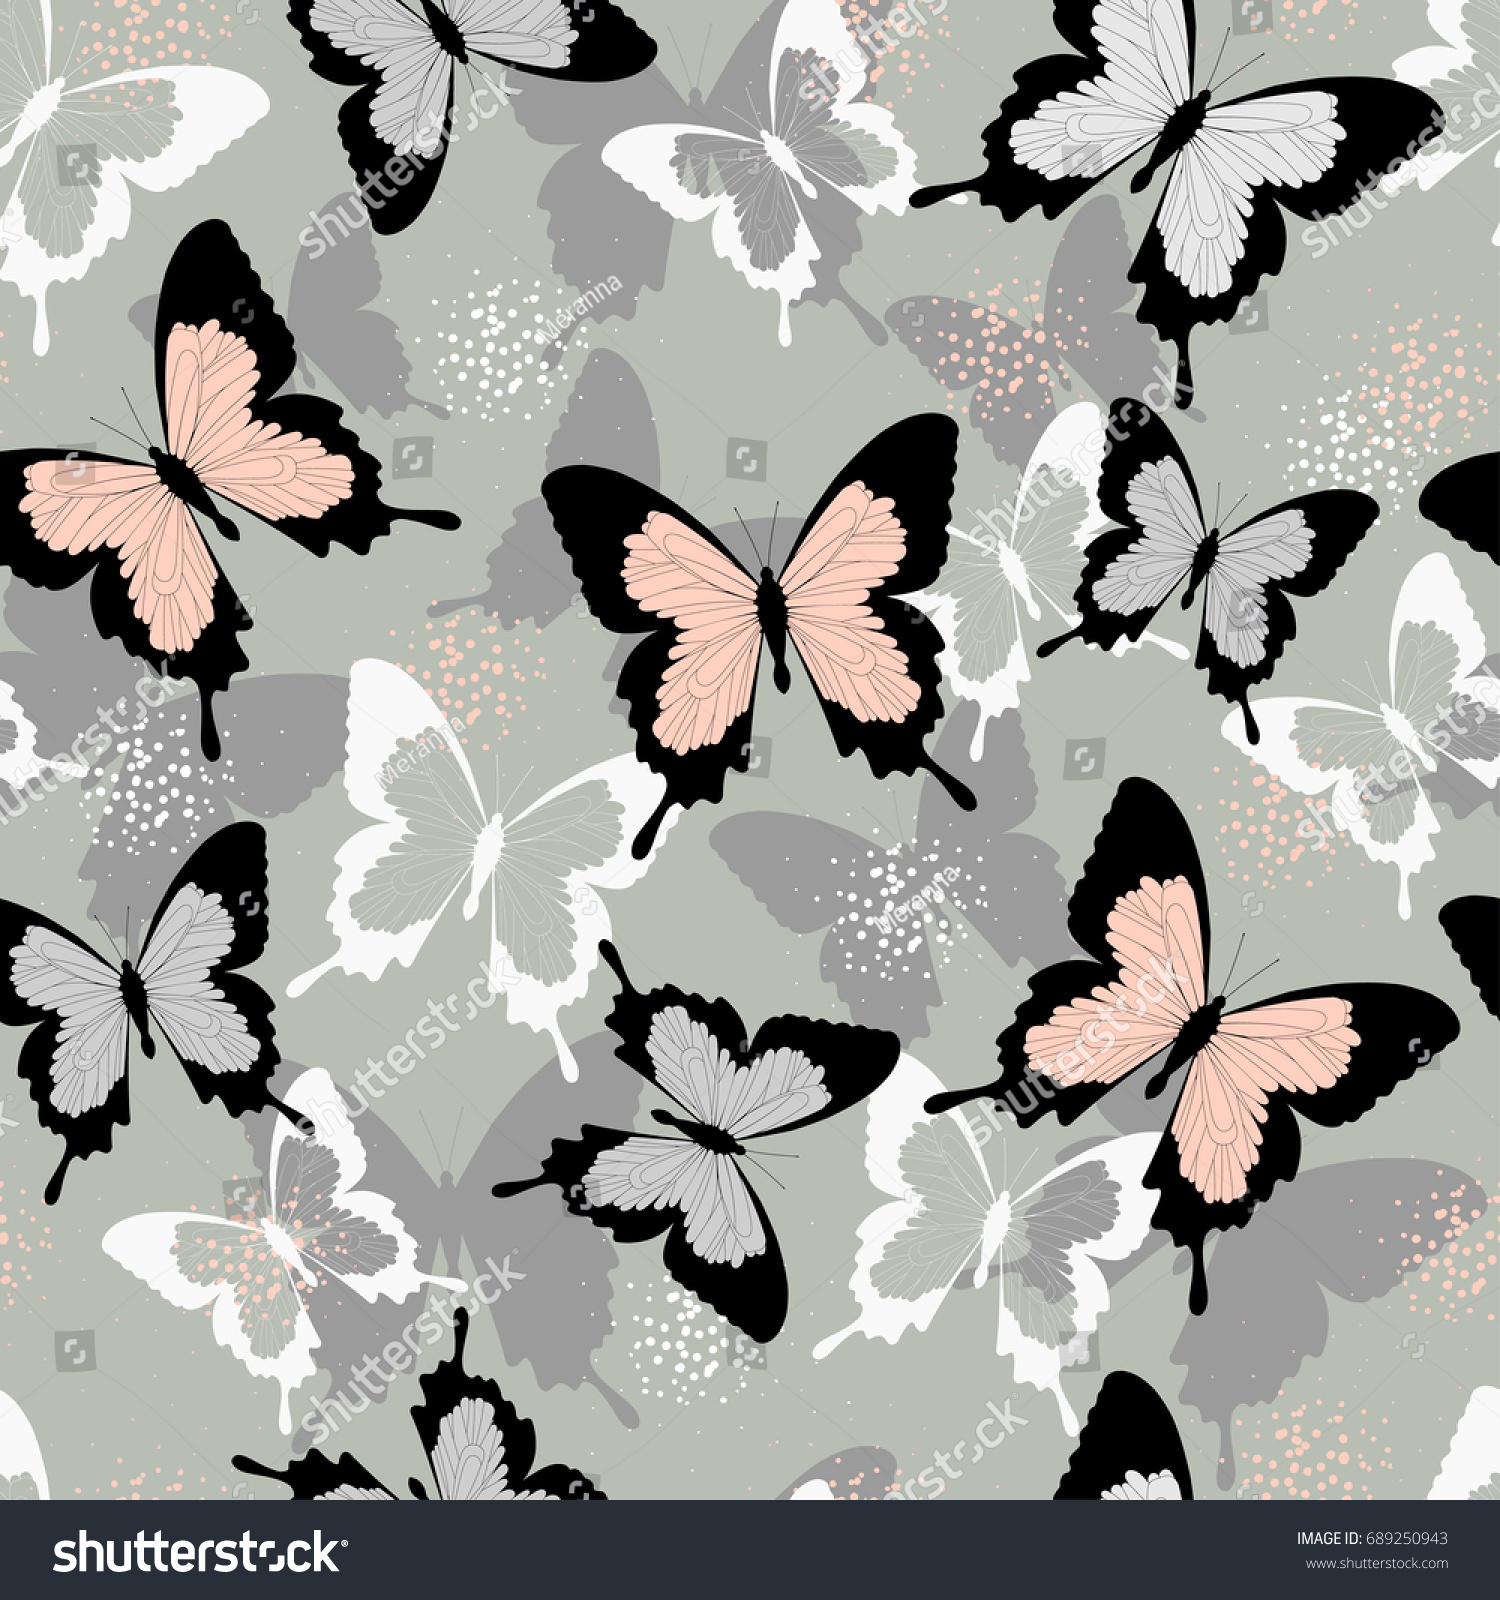 Spring Silhouettes And Shadows >> Butterfly Shadow Silhouettes Png Free Butterfly Shadow Silhouettes